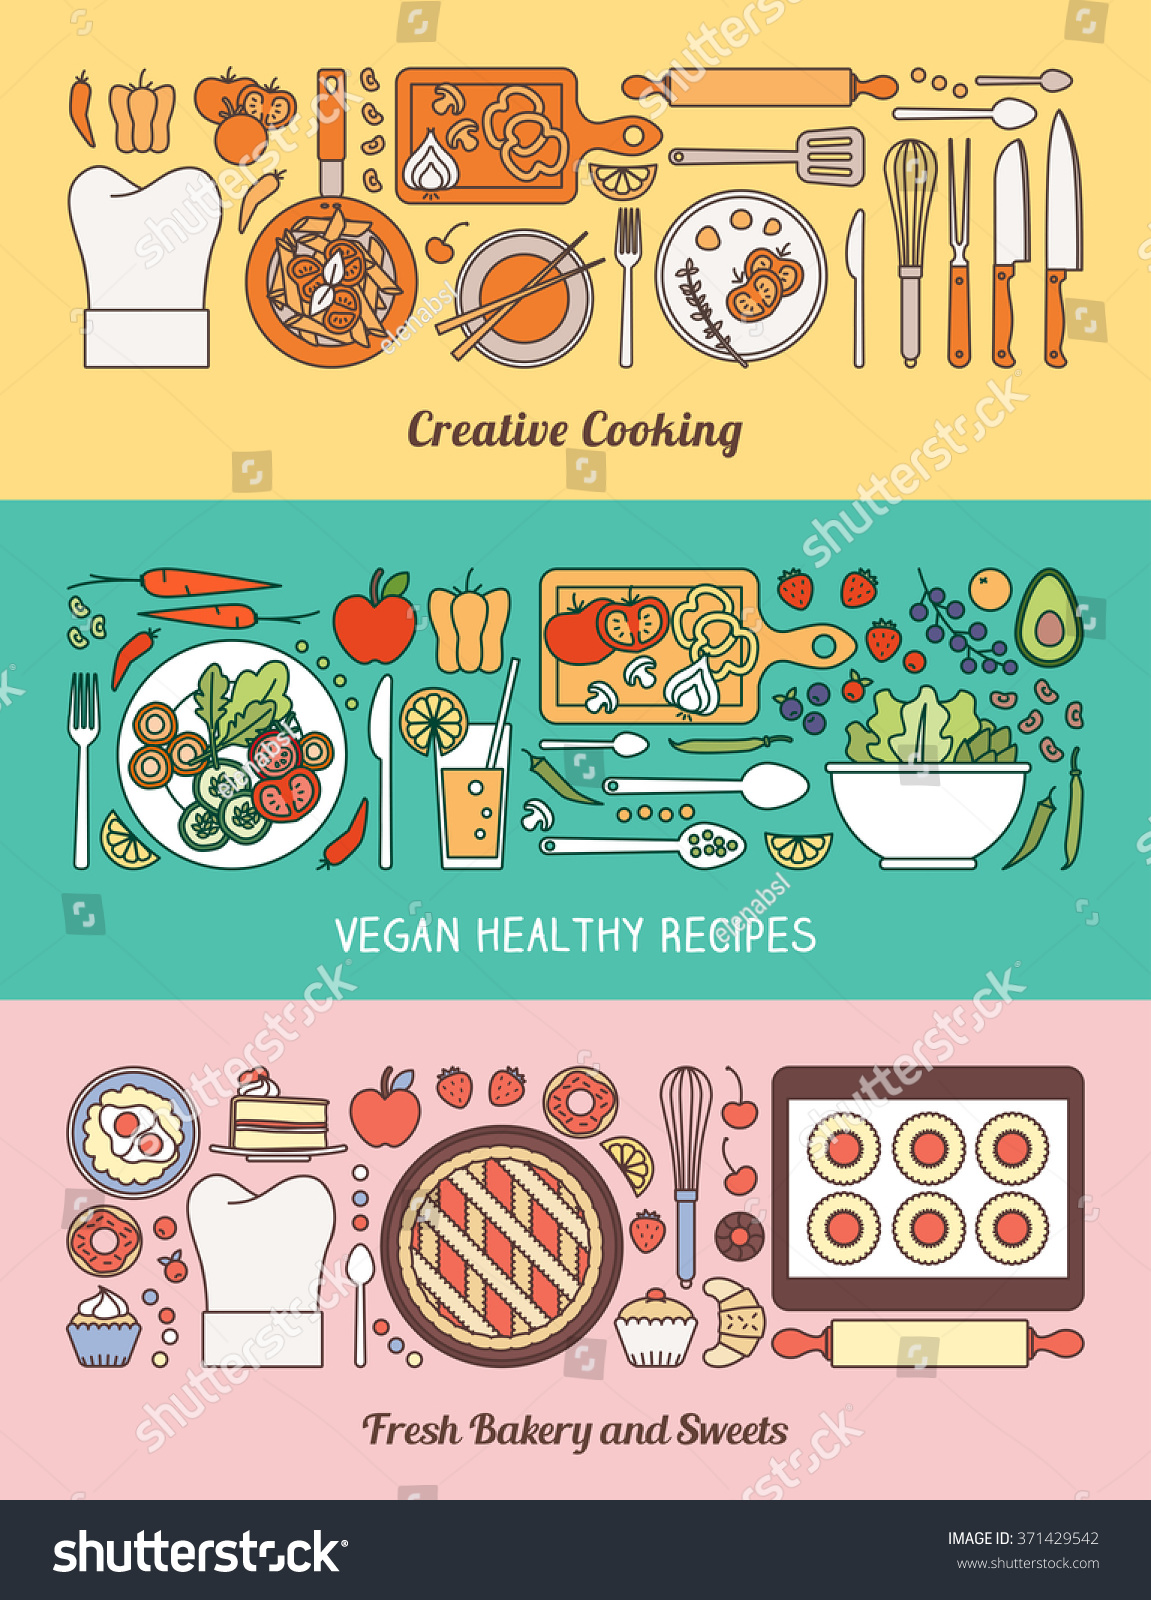 Selection of cartoons on cooking kitchens food and eating - Food Cooking And Healthy Eating Banner Set With Kitchen Utensils Recipes Vegetables And